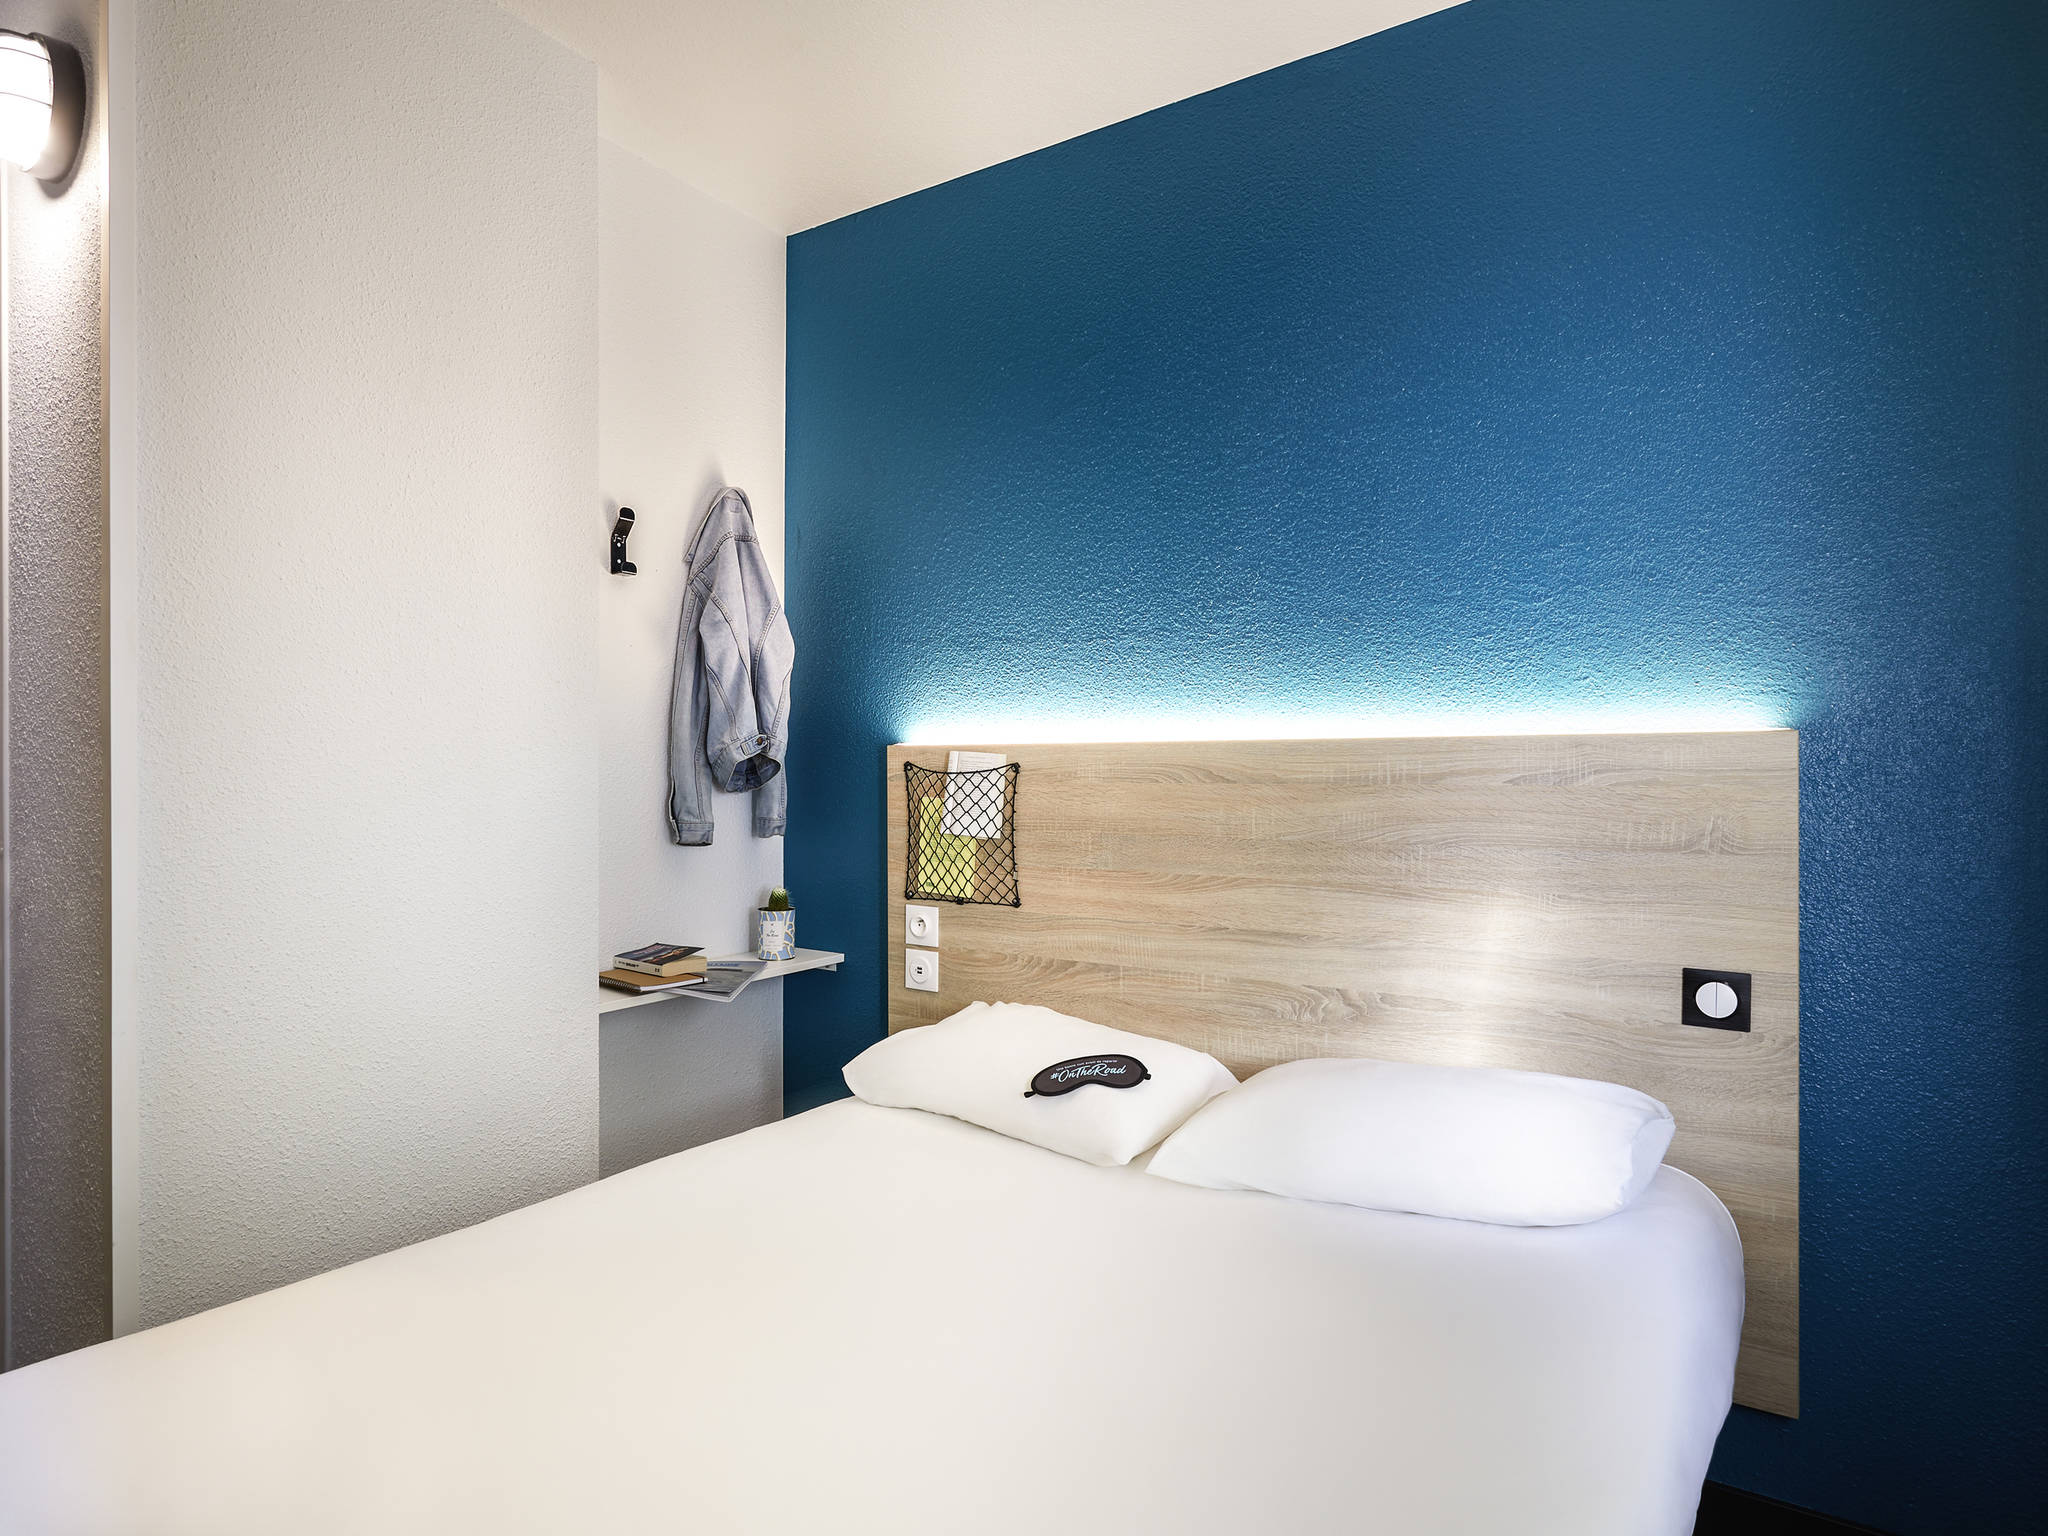 Hotel - hotelF1 Paris Gennevilliers (renovated)